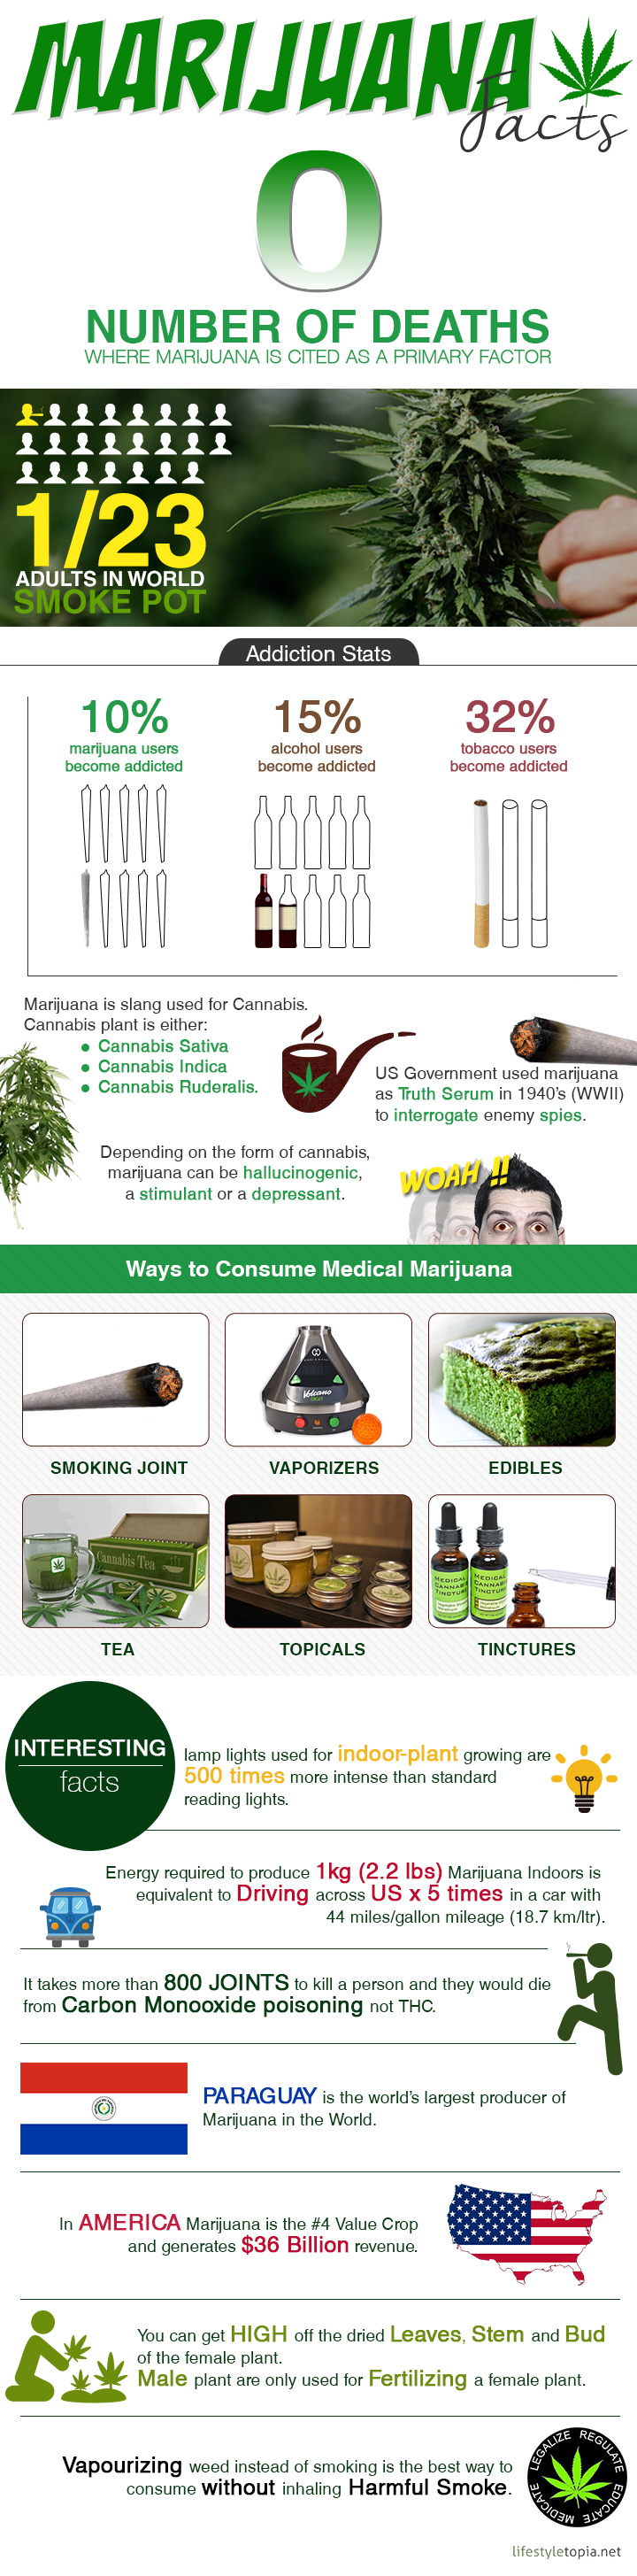 Interesting facts, stats and addiction about marijuana